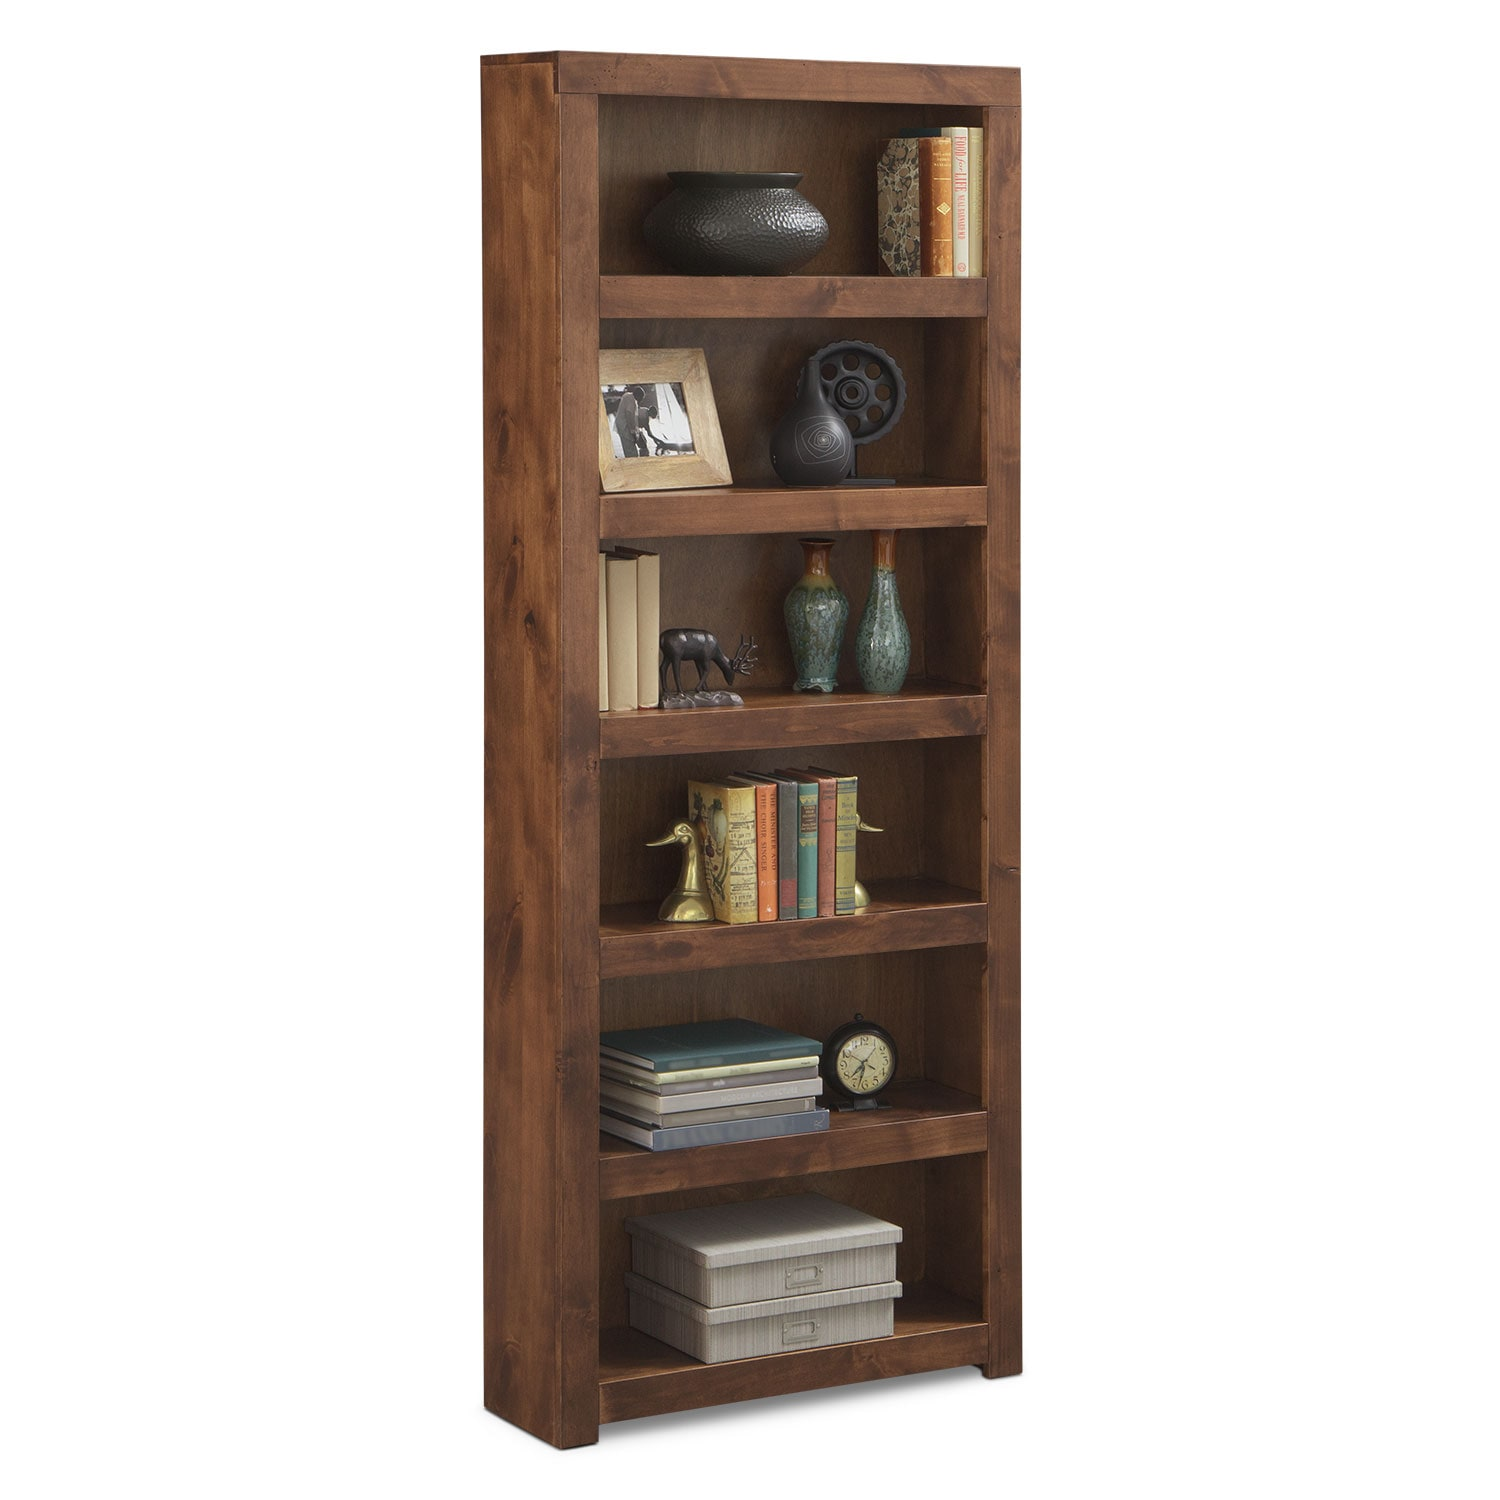 "Bricklin 84"" Bookcase - Fruitwood"